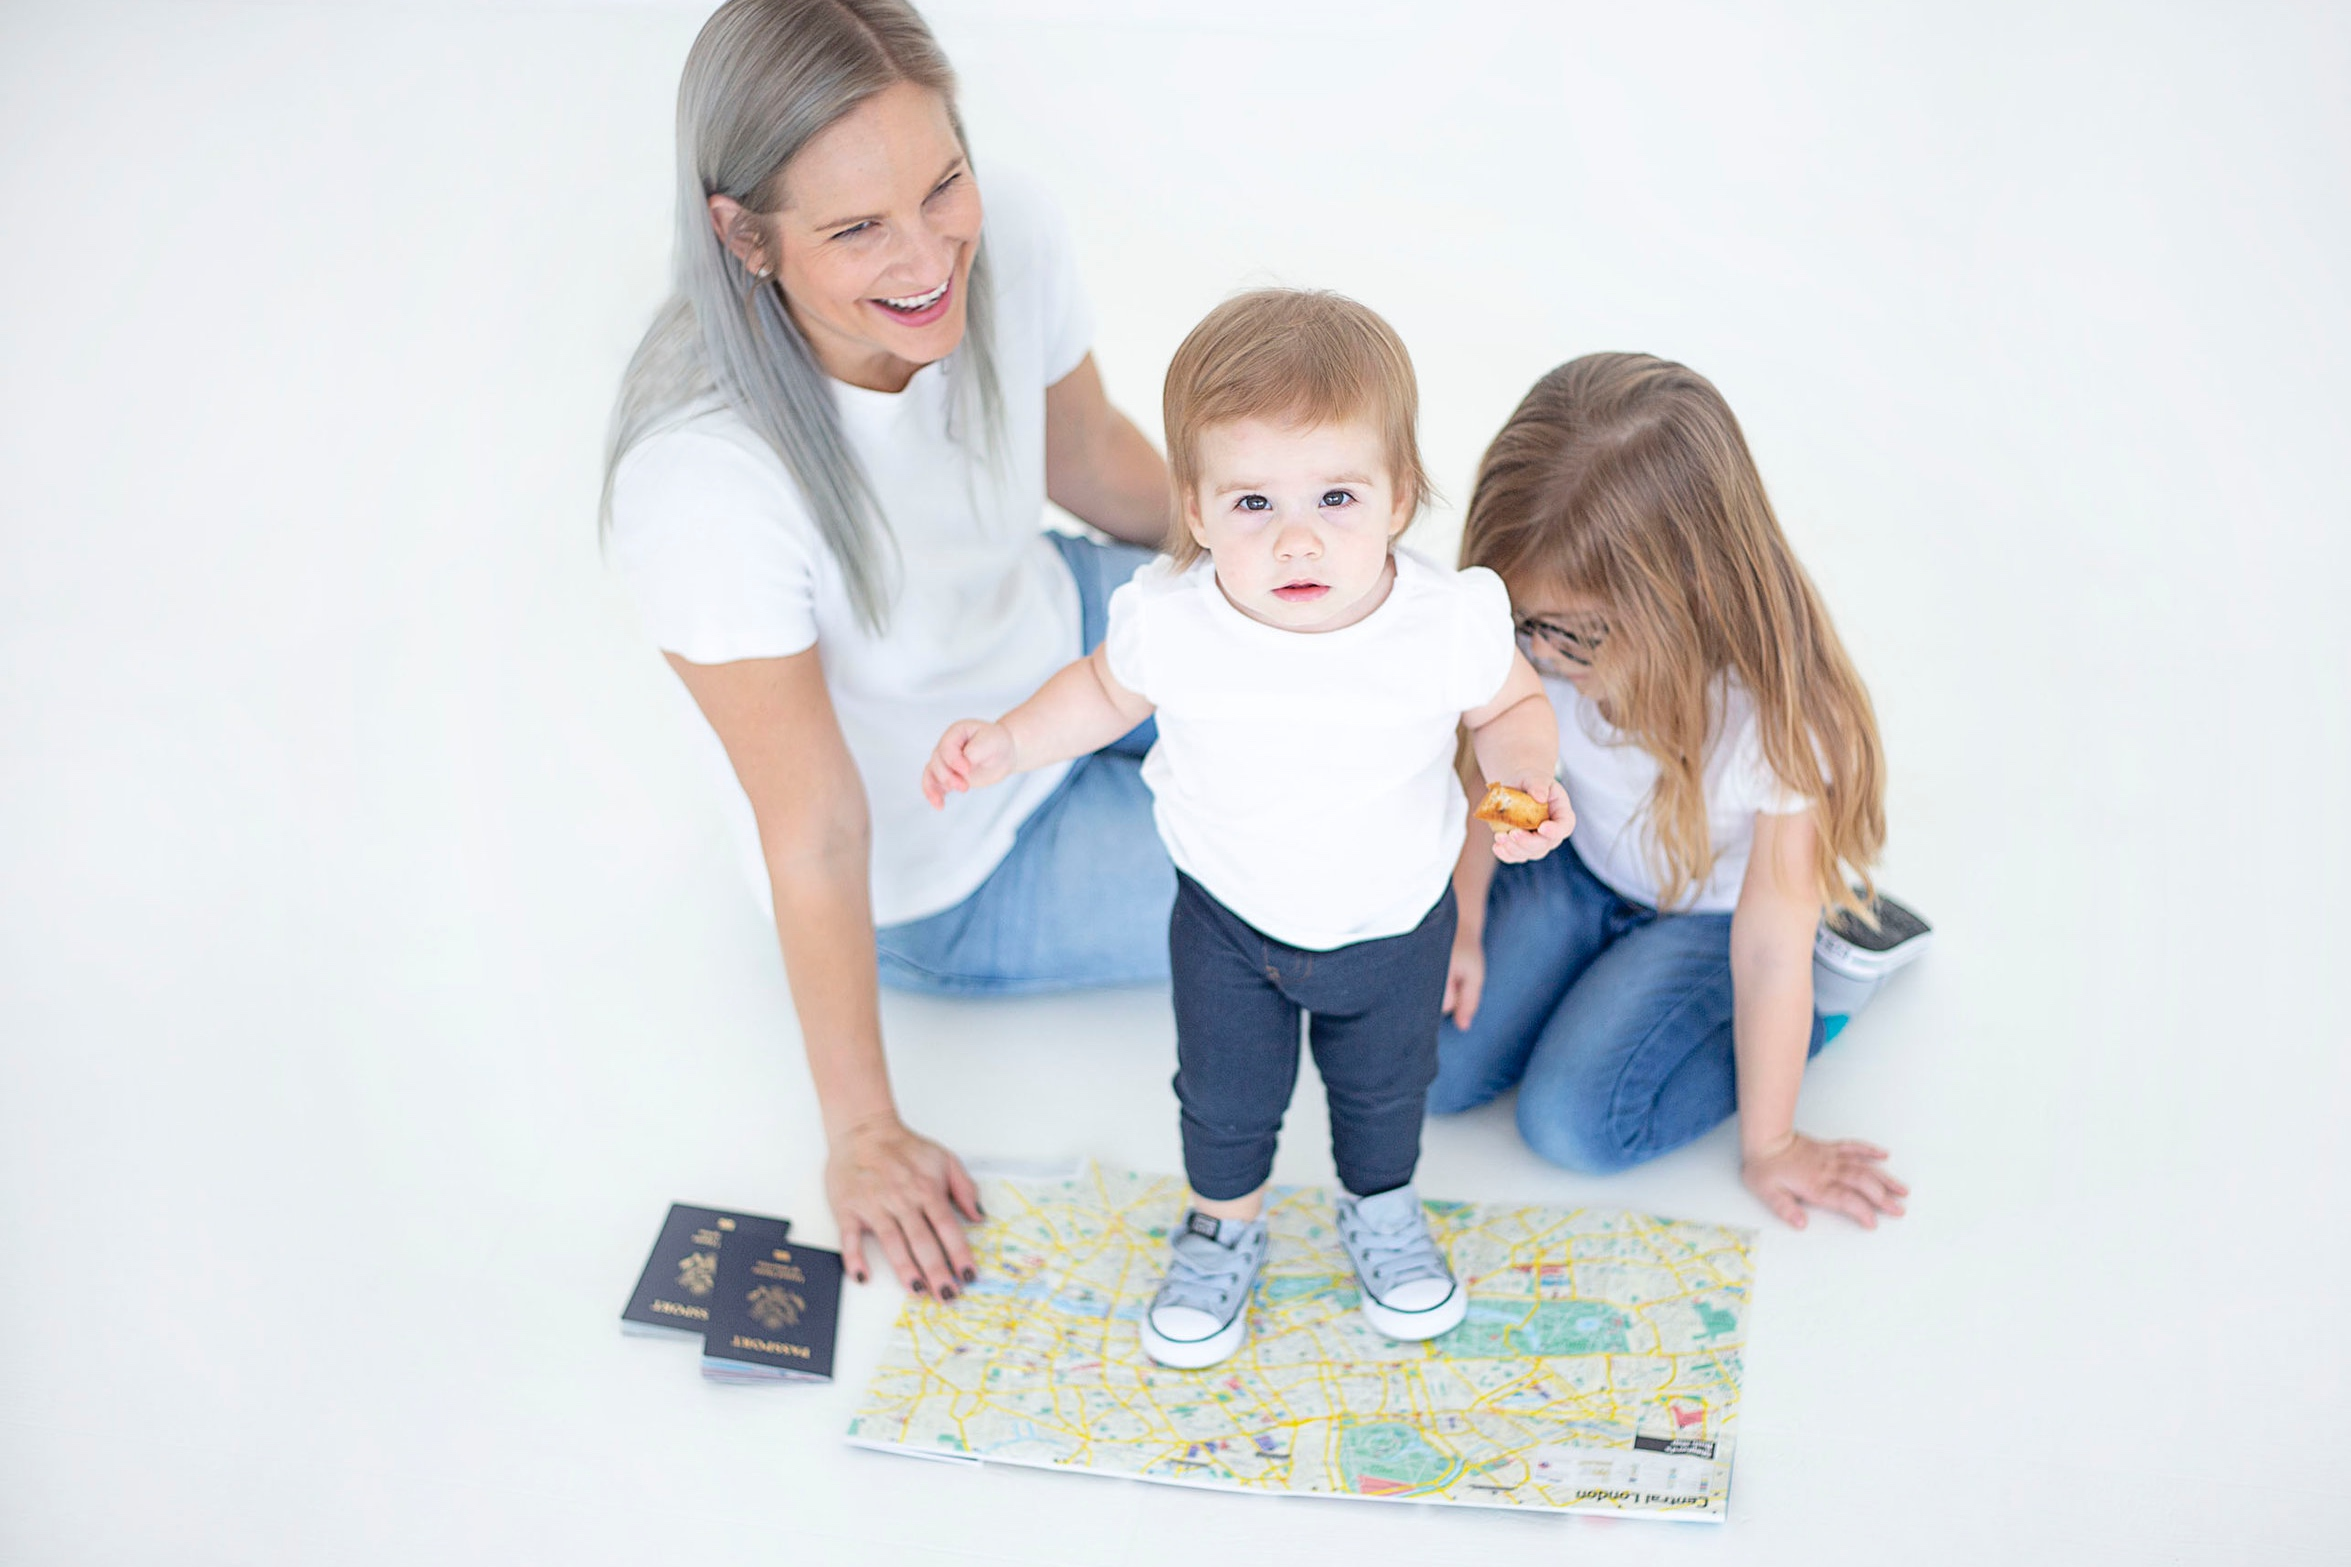 Travel with kids can be hard. Having the right gear can make or break a trip! - Here are our MUST HAVE travel essentials for families.